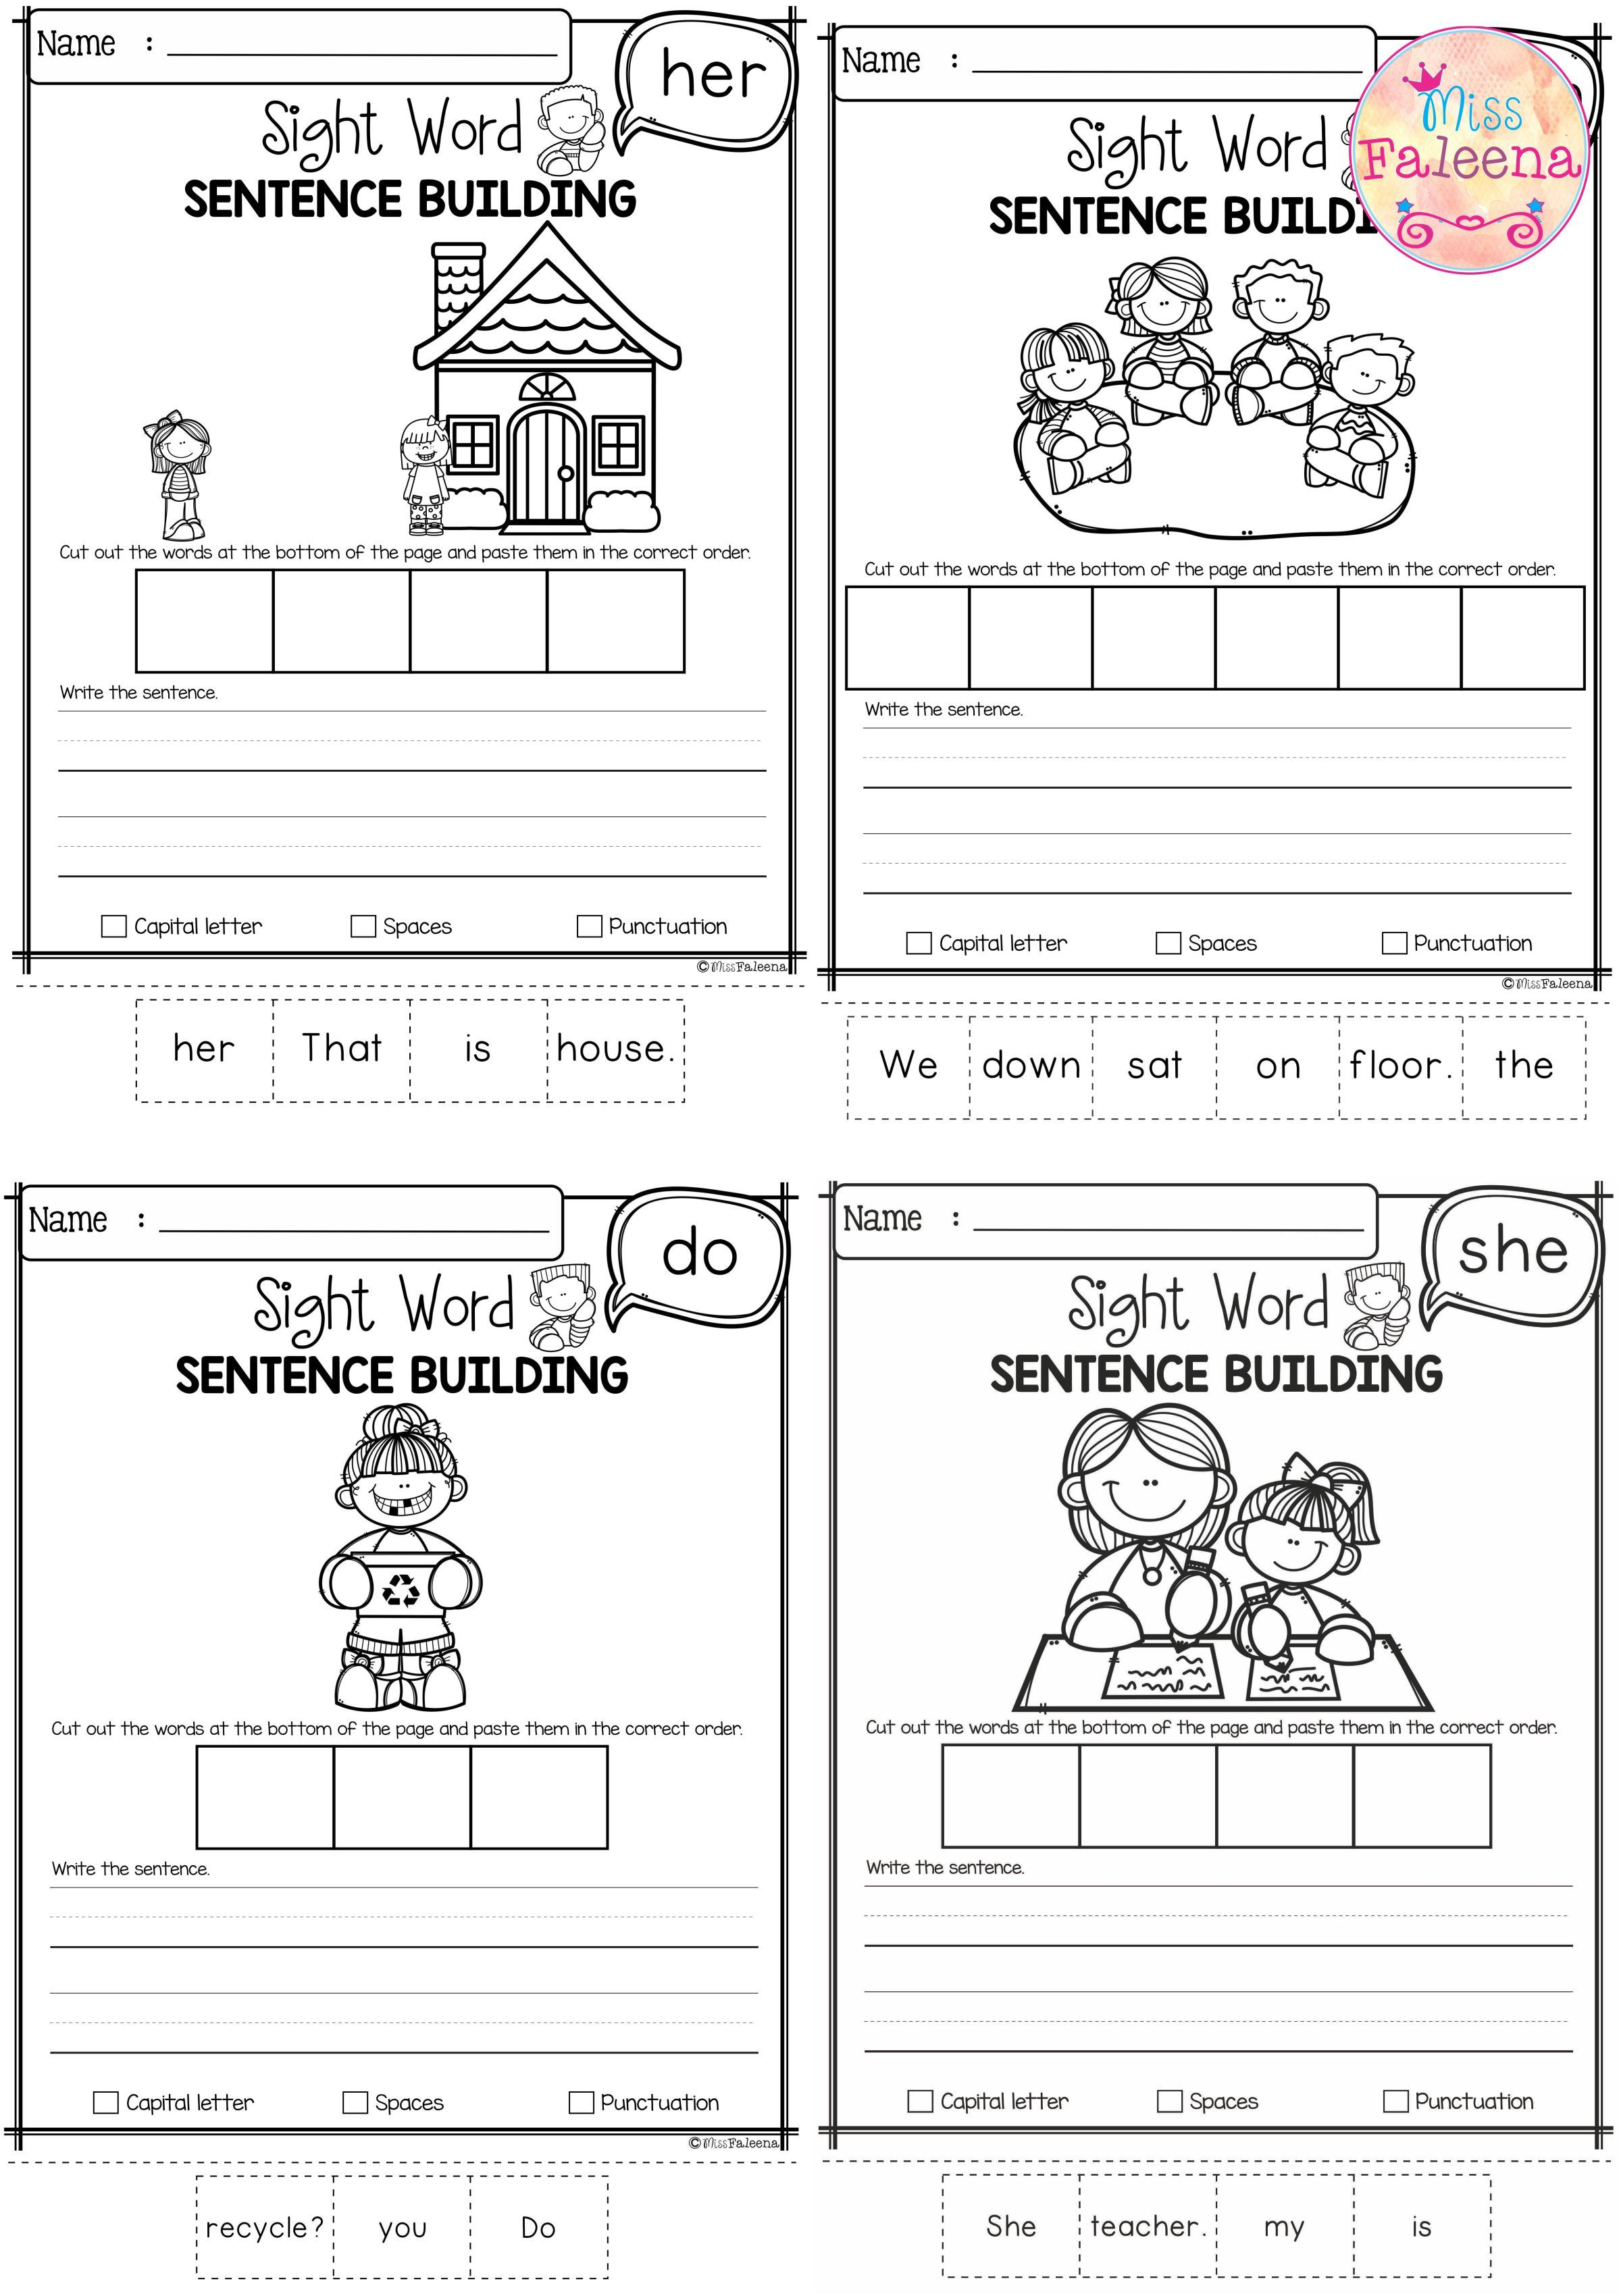 Free Sight Word Sentence Building